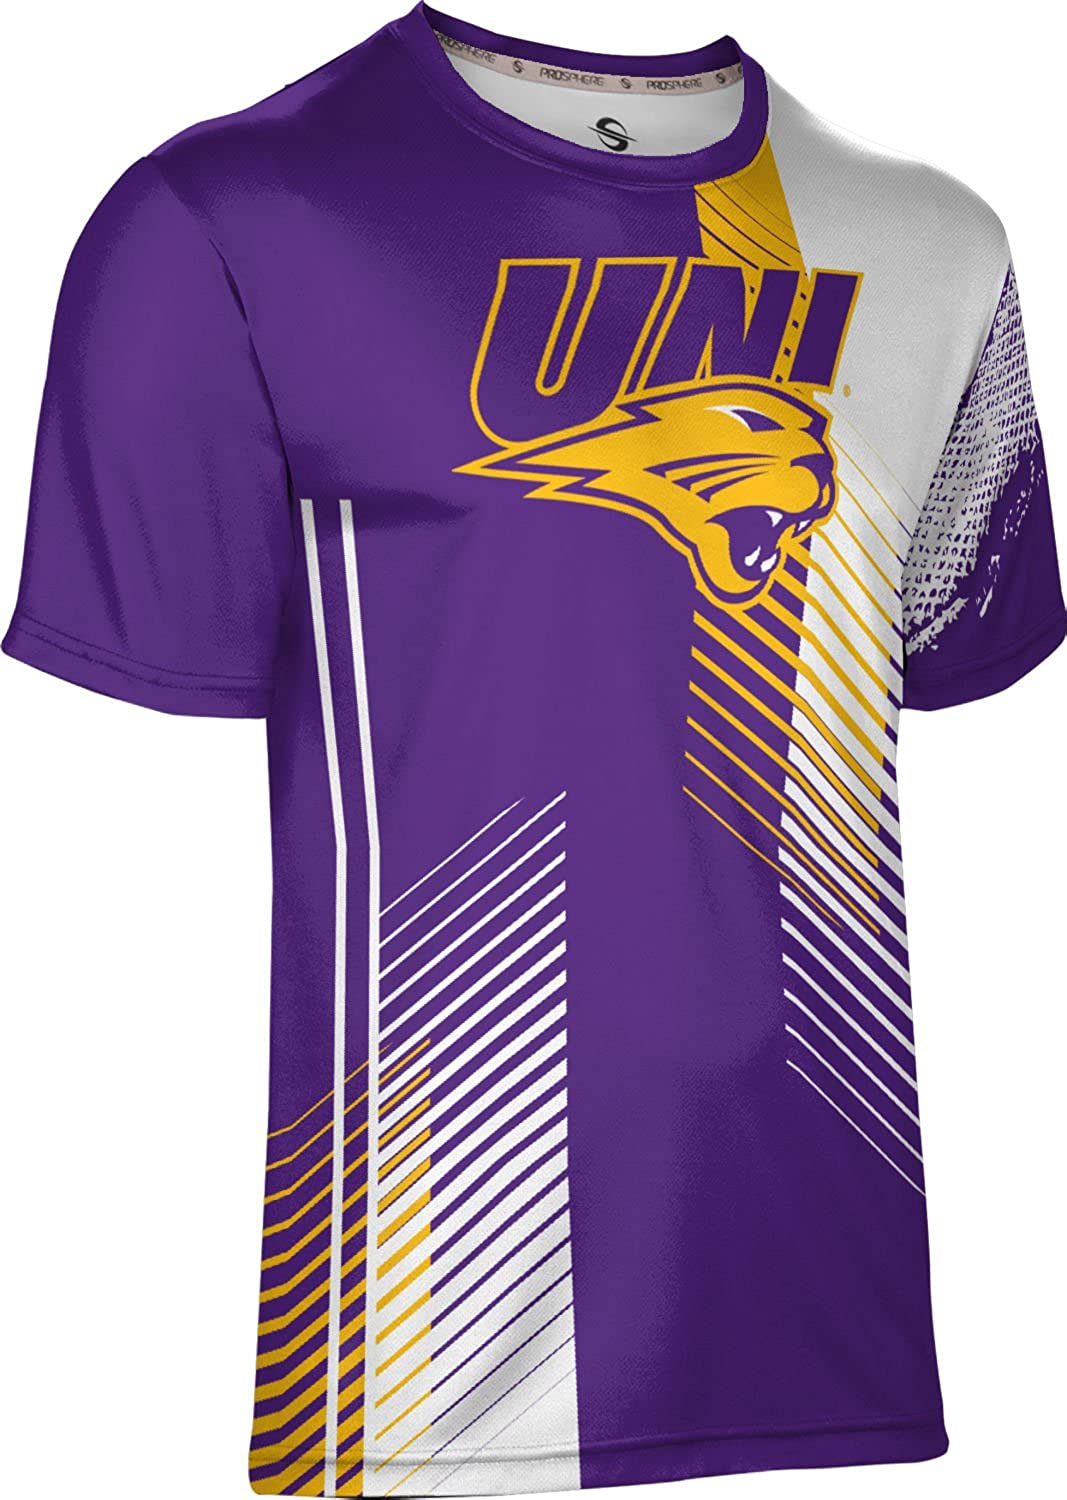 ProSphere University of Northern Iowa Boys Performance T-Shirt Hustle